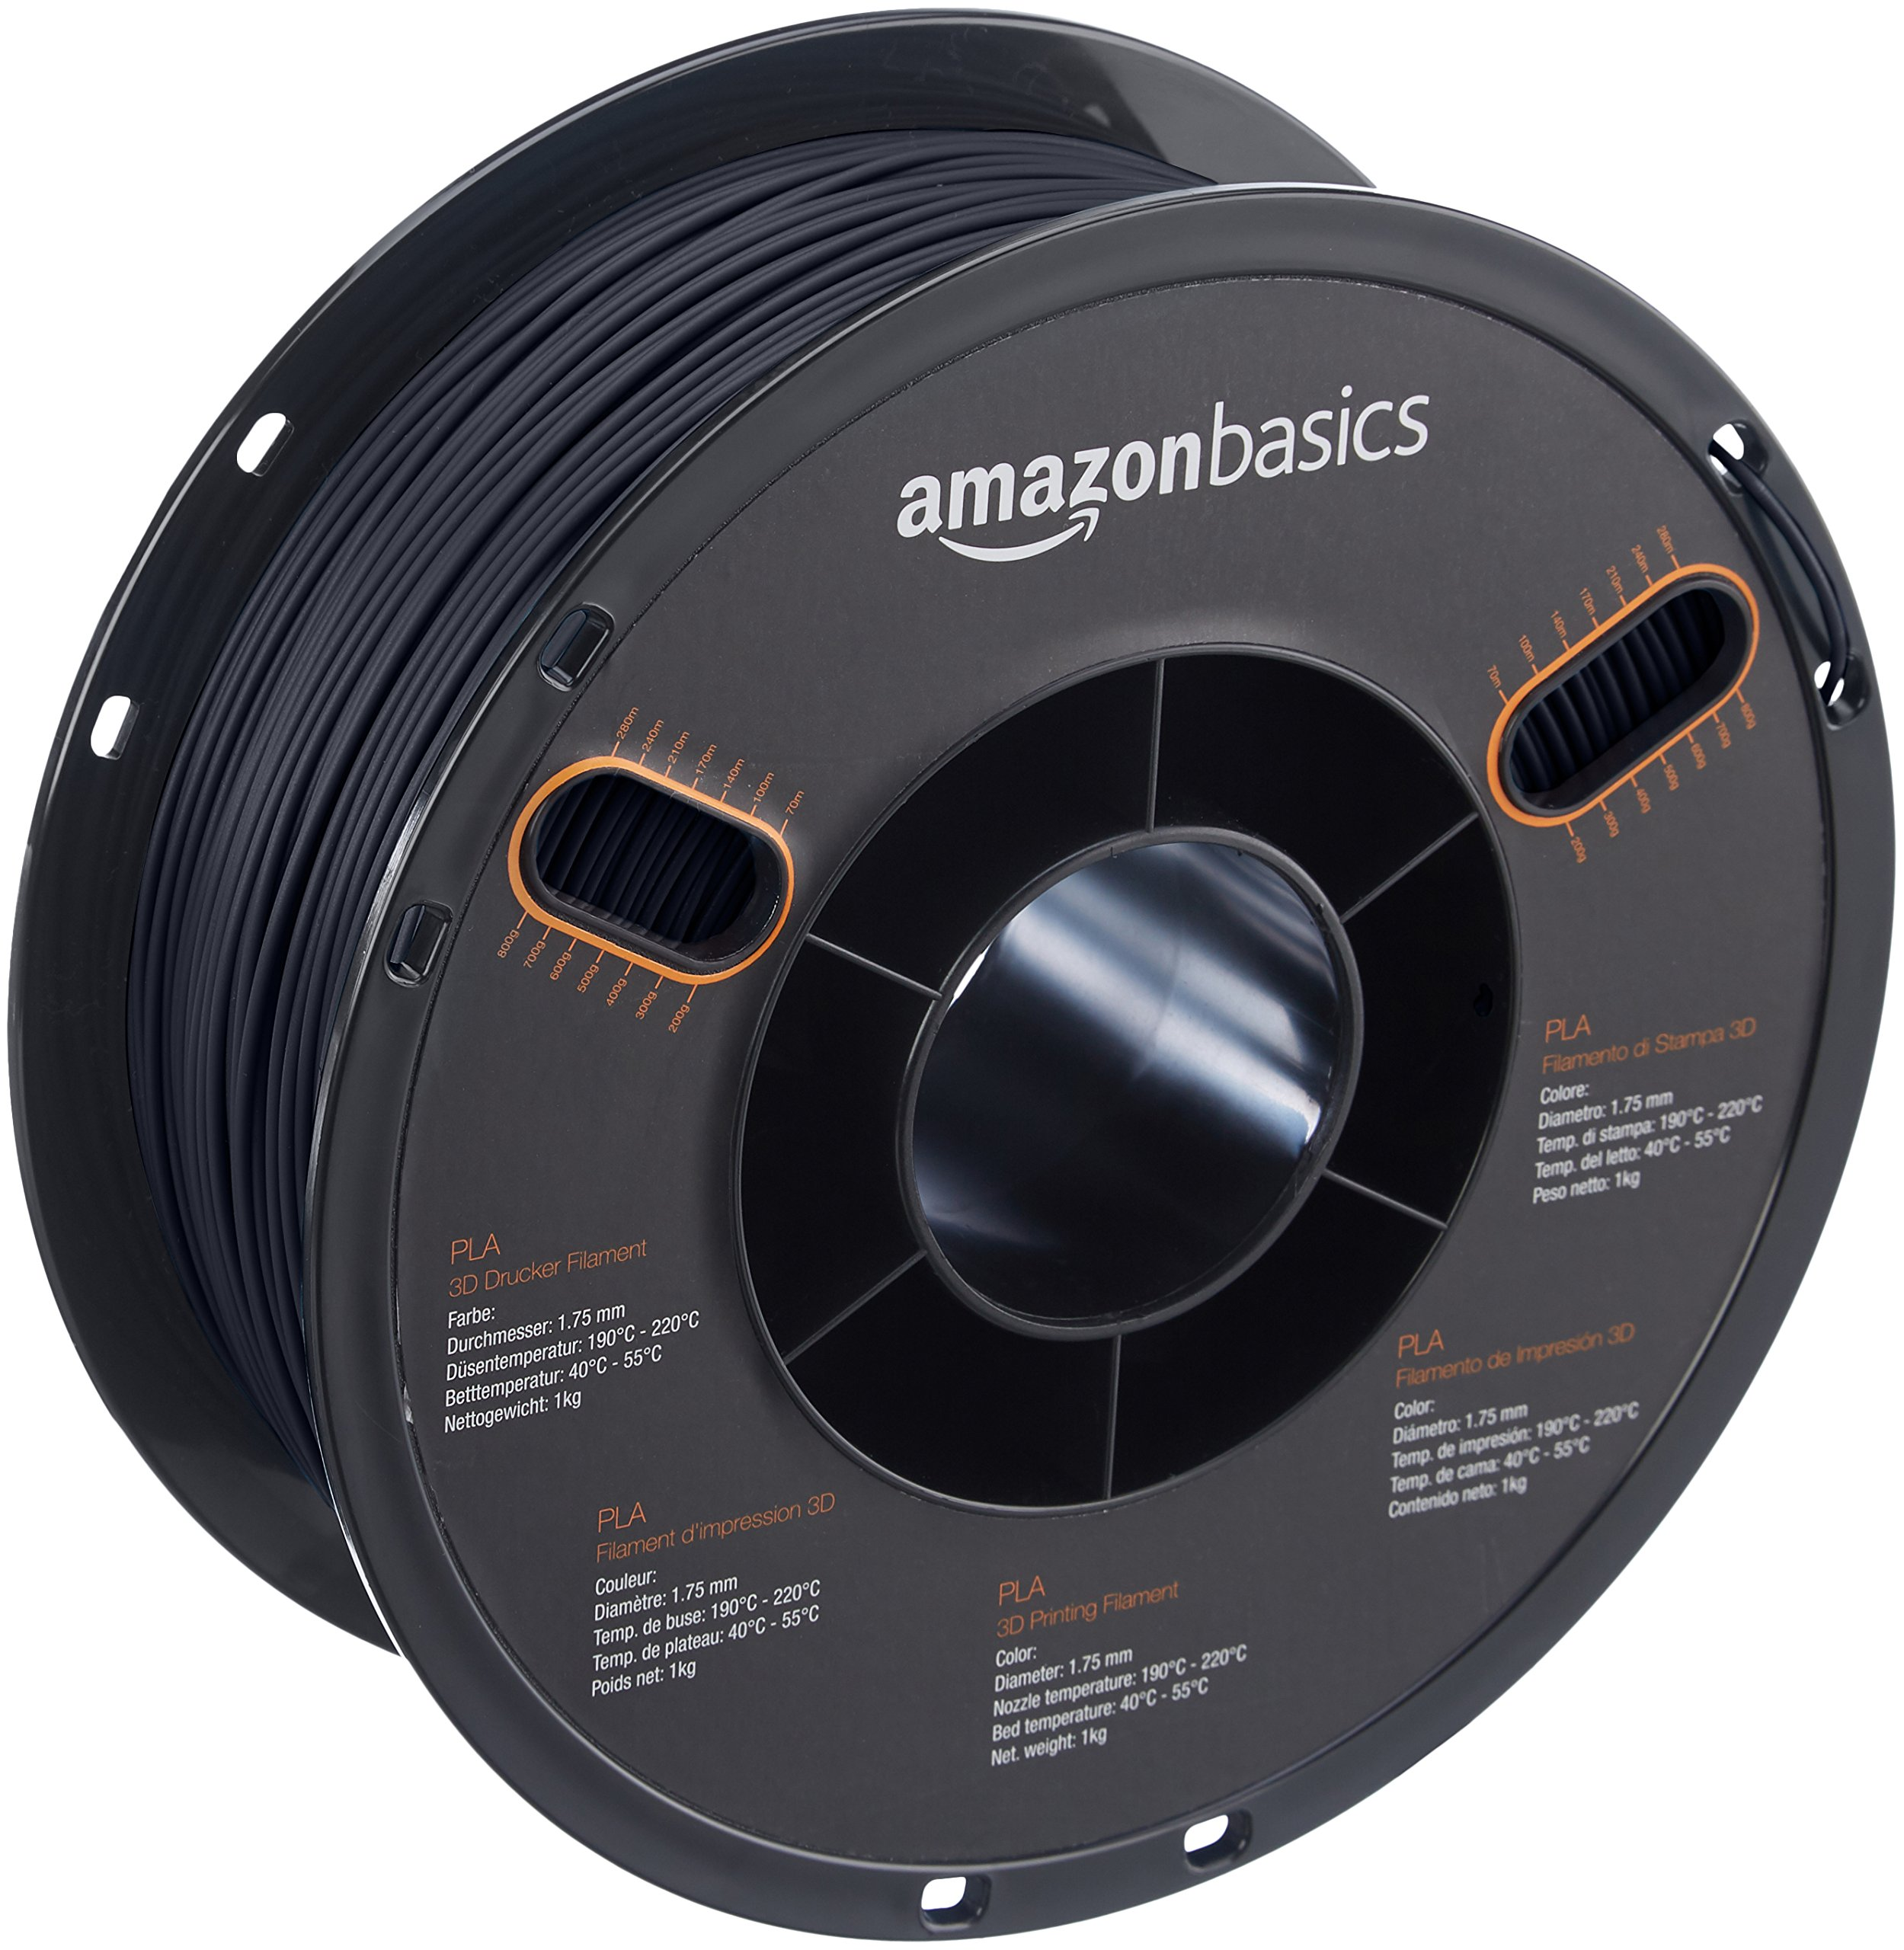 AmazonBasics PLA 3D Printer Filament, 1.75mm, Black, 1 kg Spool